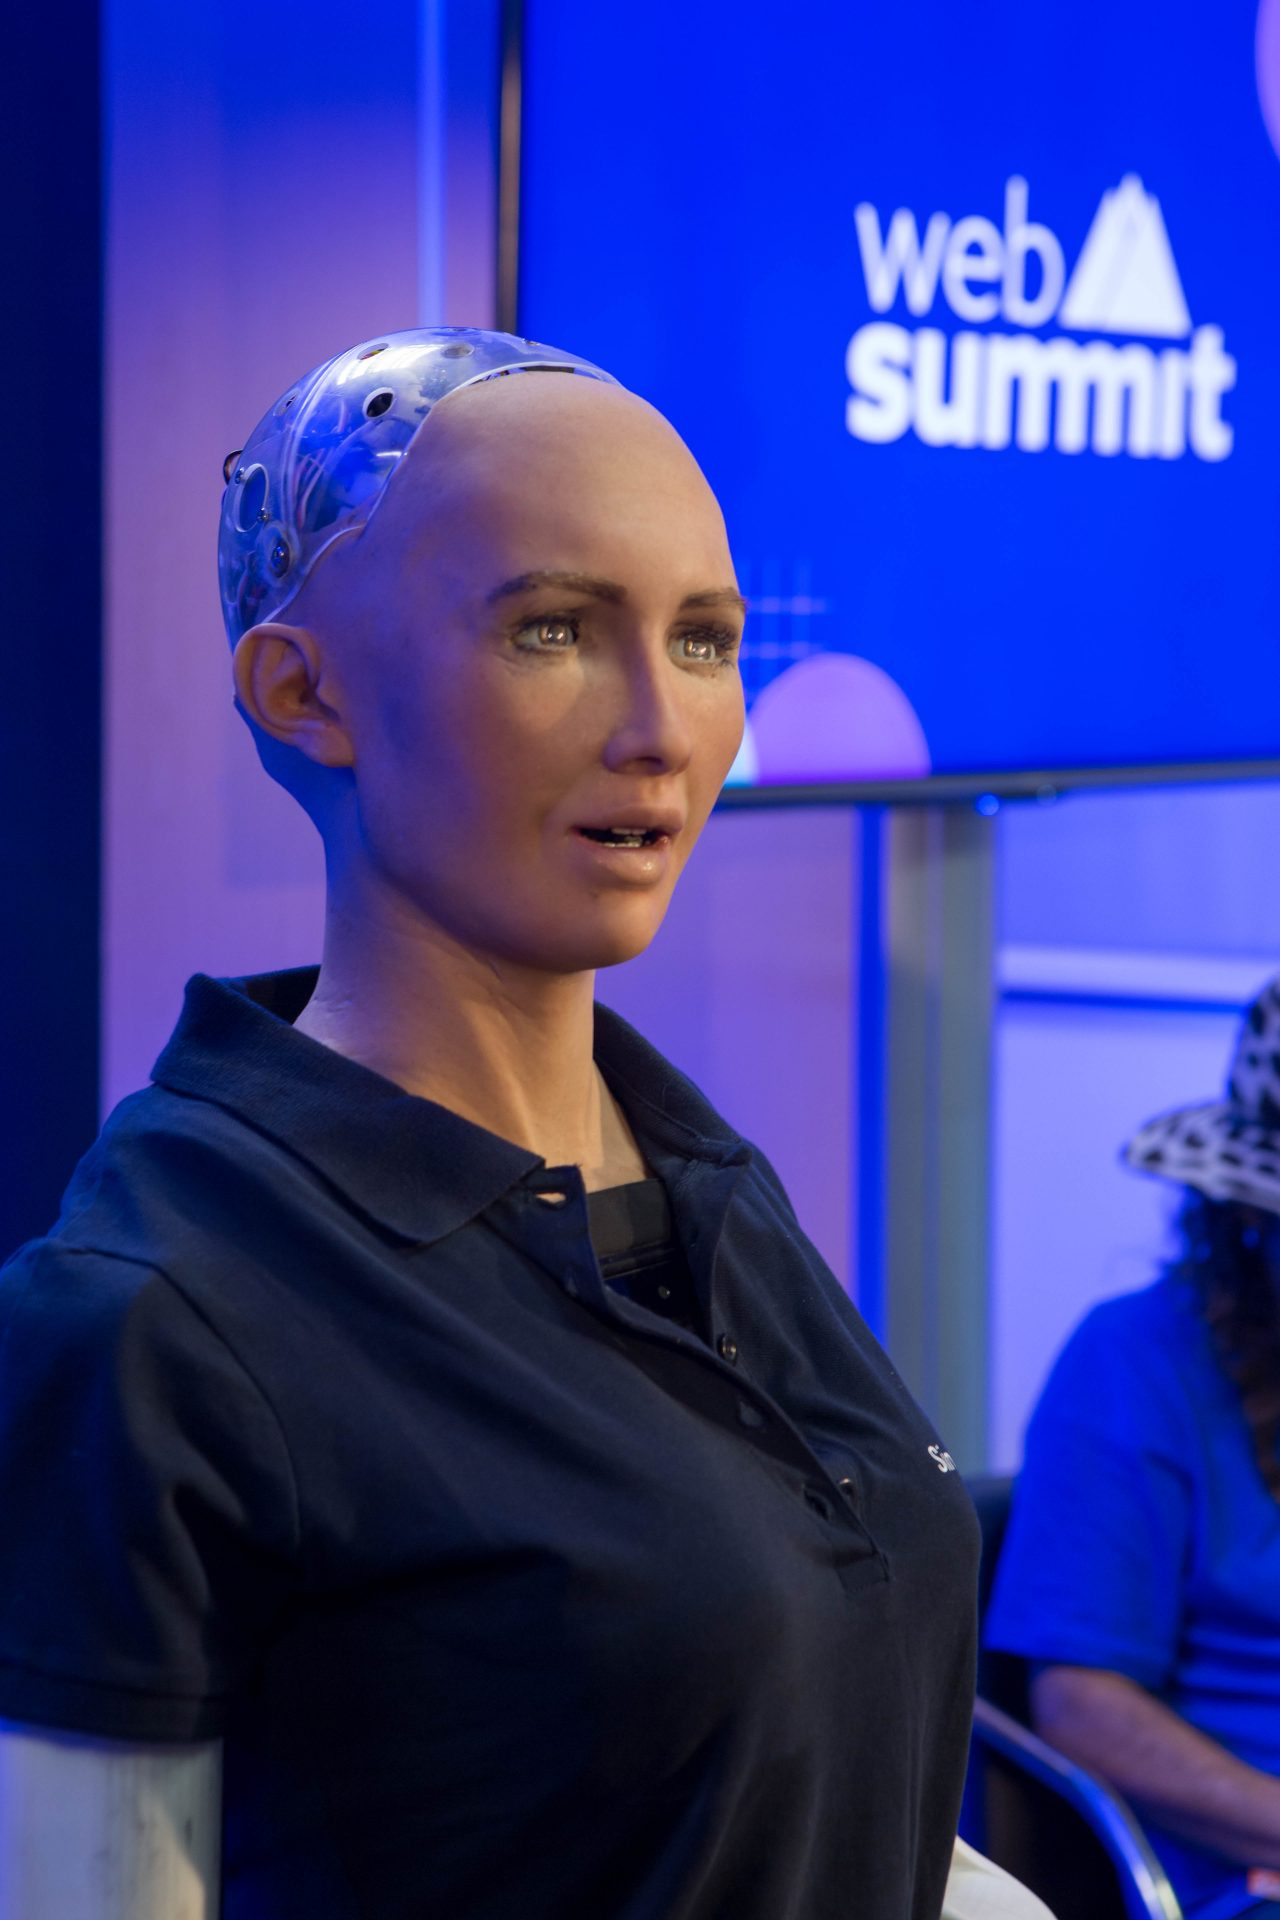 """Sofia, the front line AI, in the race to create the first self thinking, walking and talking Artificial Intelligence Entity """"online"""". (Photo Credit: Hermann Rohr for the Vision Times)"""